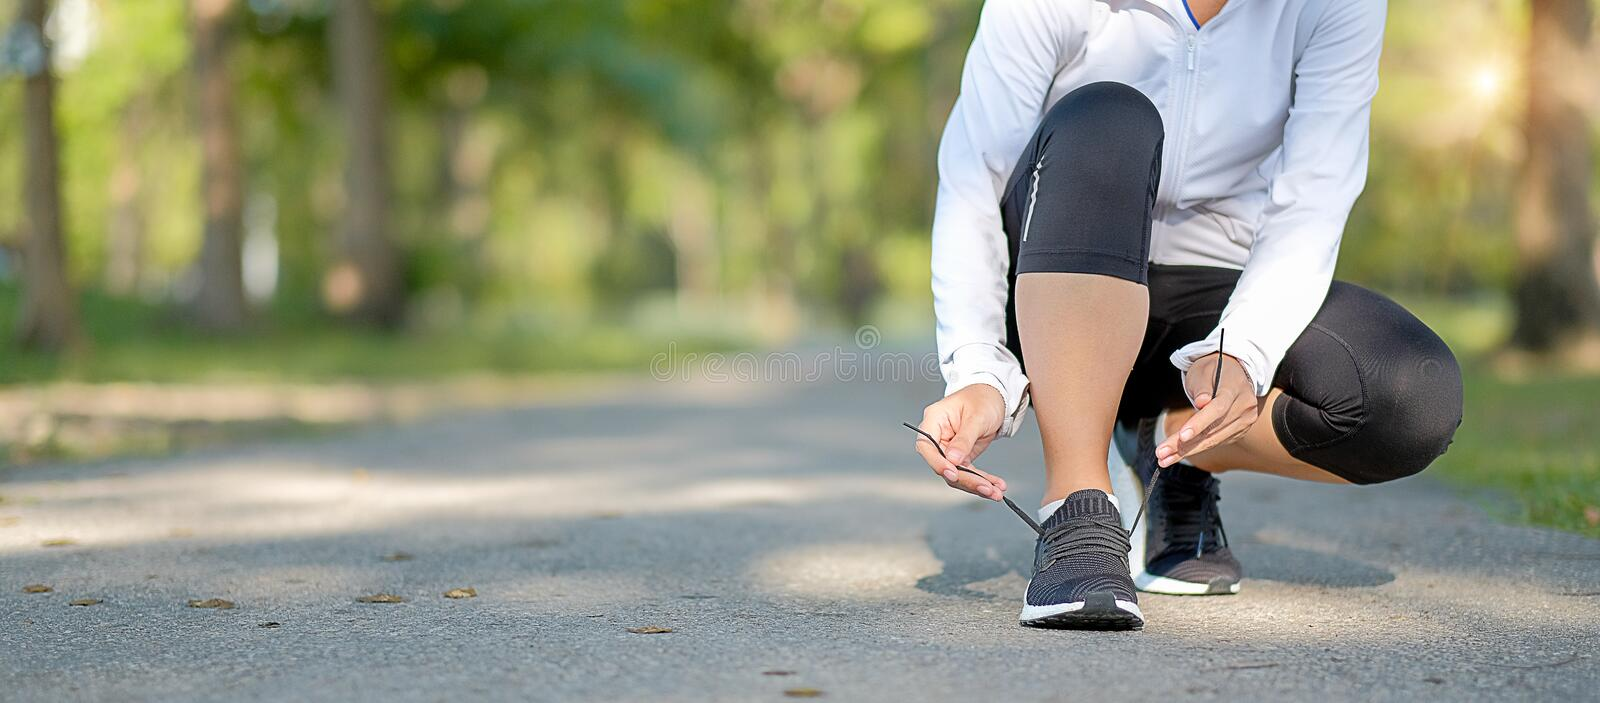 Yyoung fitness woman legs walking in the park outdoor. Young fitness woman legs walking in the park outdoor, female runner running on the road outside, asian royalty free stock images